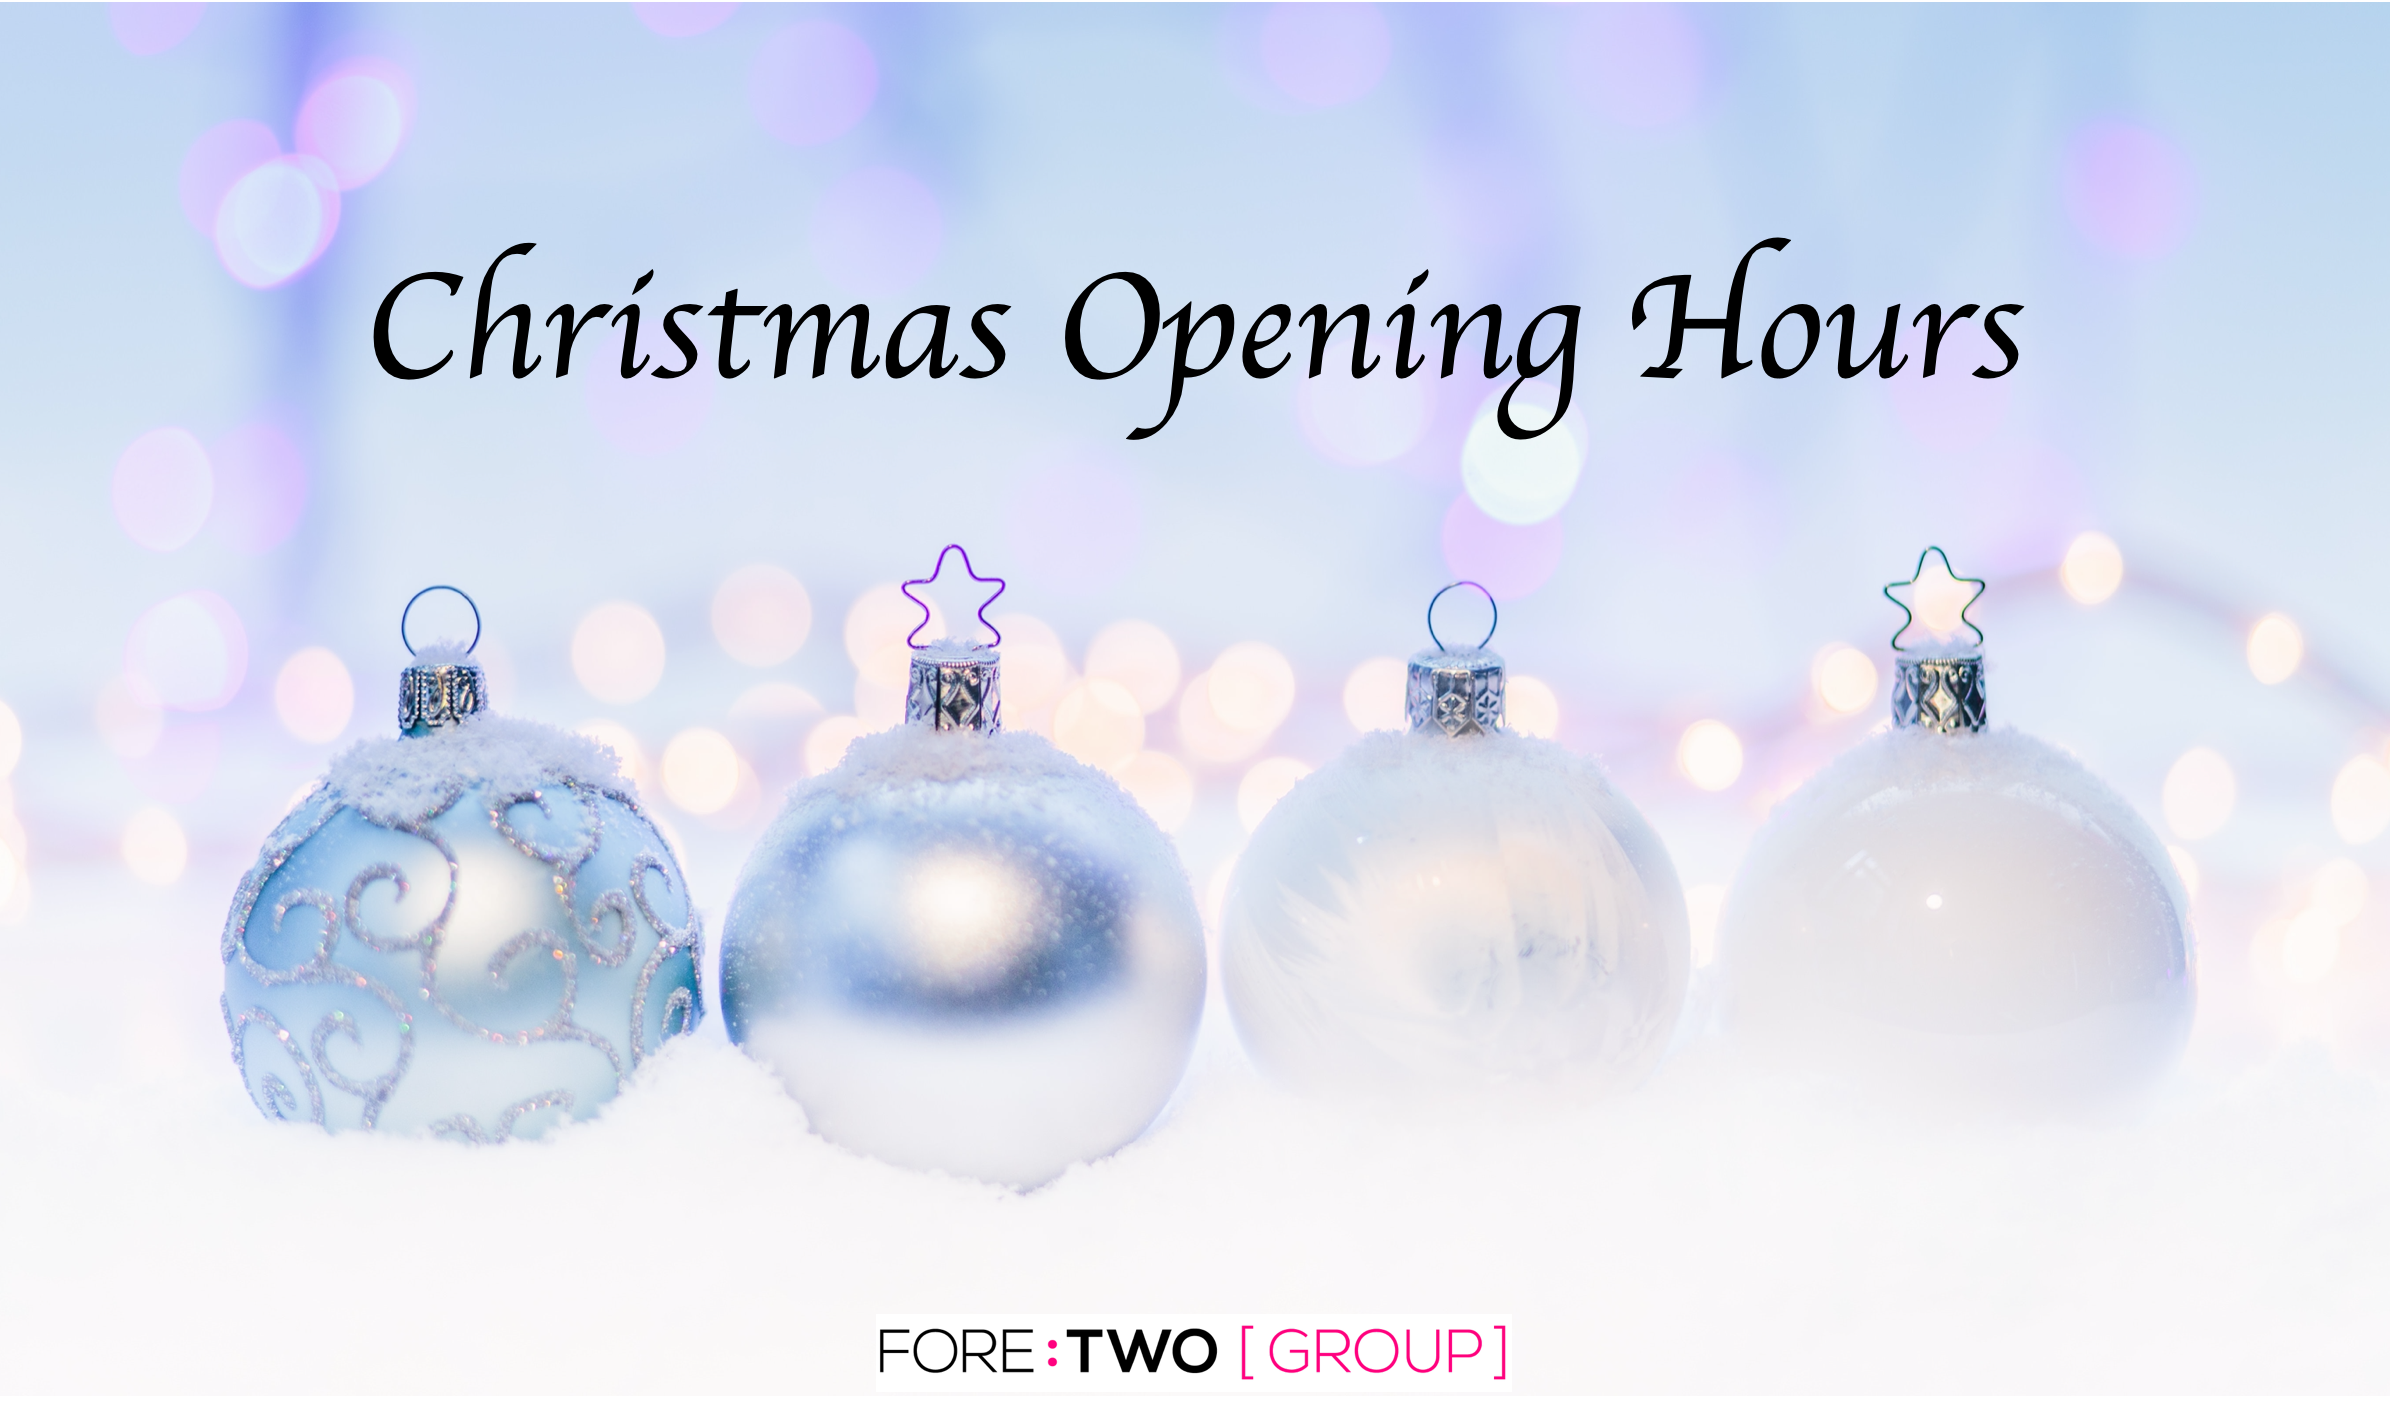 OUR CHRISTMAS & NEW YEAR OPENING HOURS